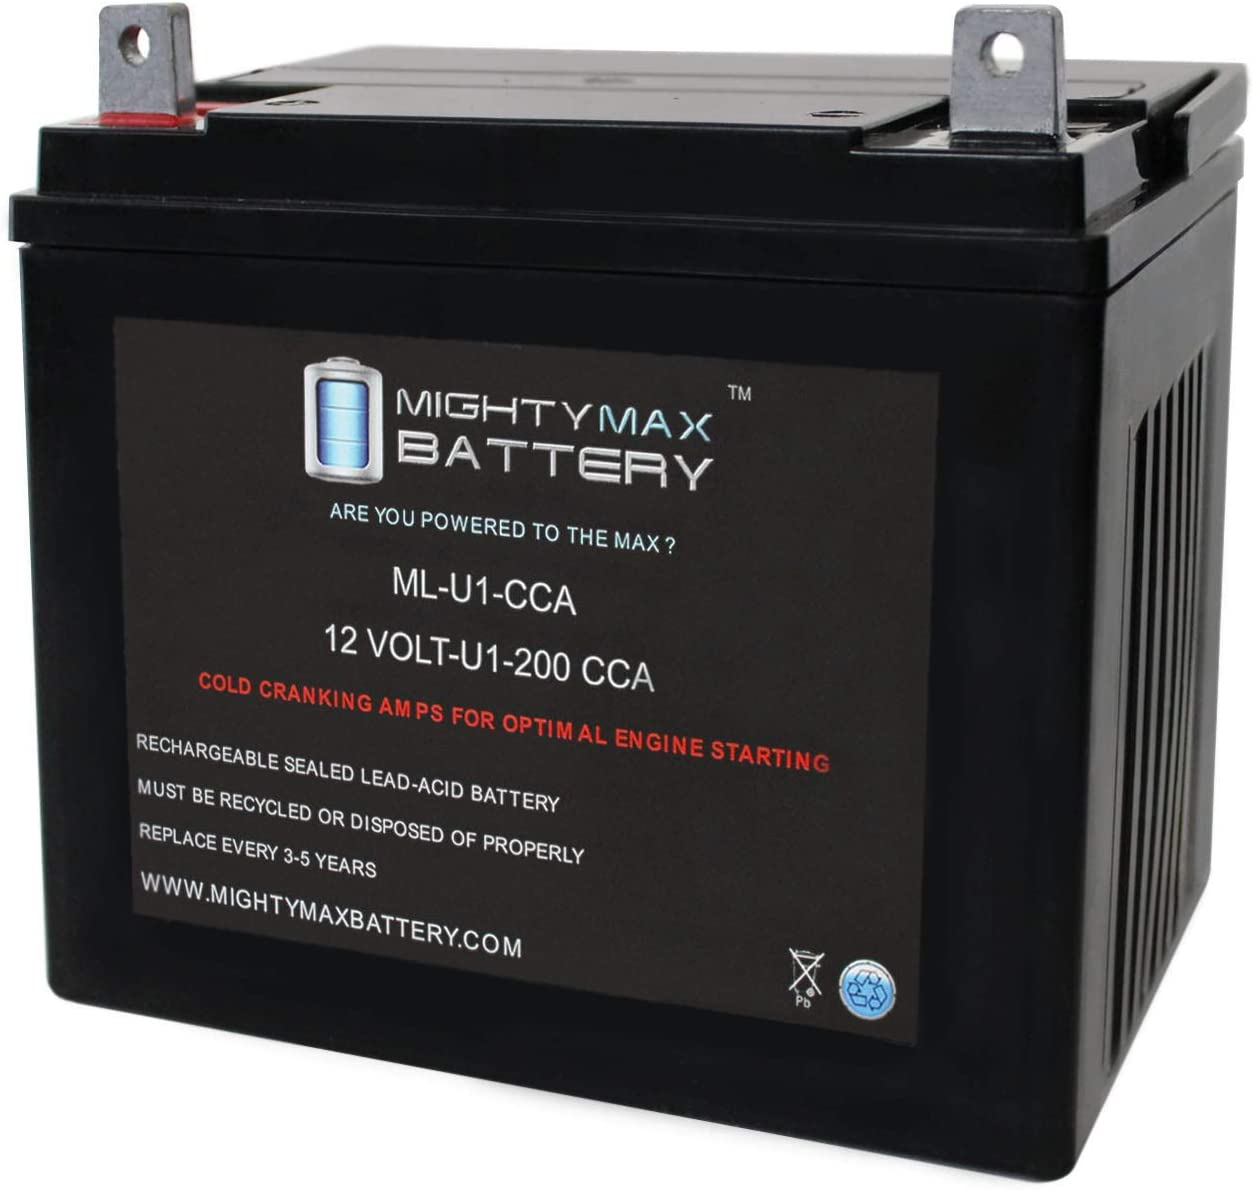 Mighty Max Battery ML-U1 12V 200CCA Battery for Jacobsen Chief Lawn Tractor and Mower Brand Product